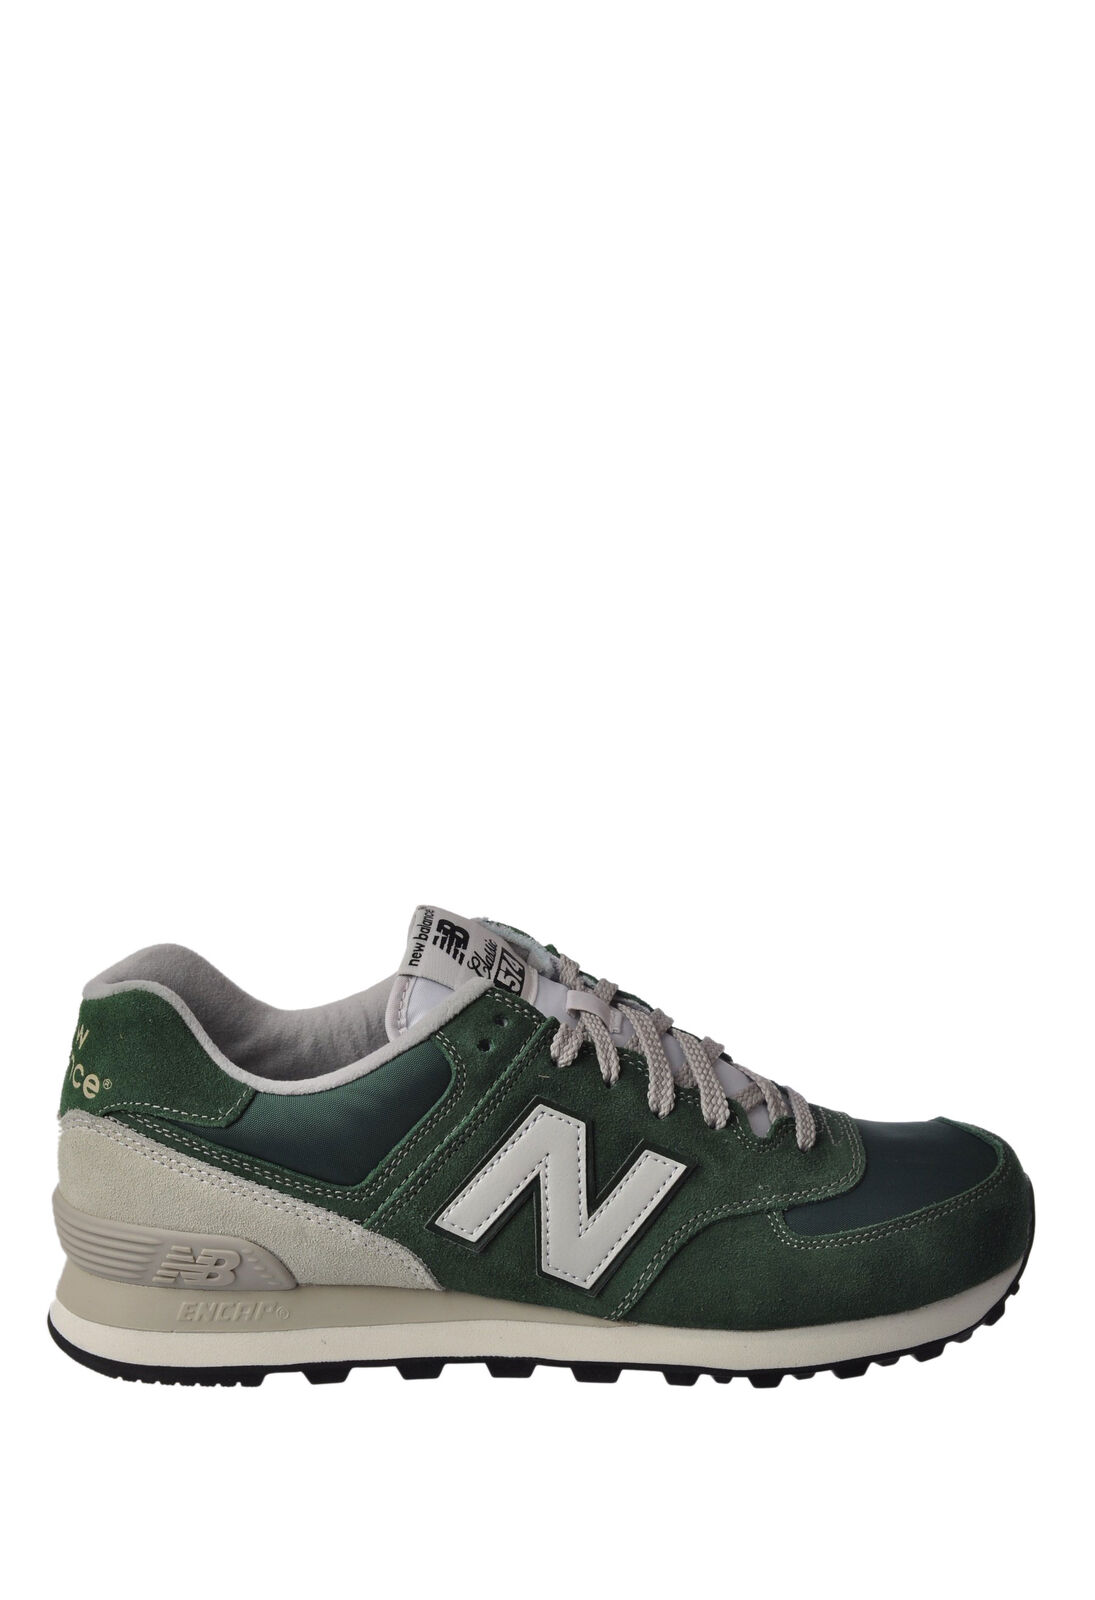 New New New Balance - Shoes- low - Man - Green - 892416L185043 e0e554